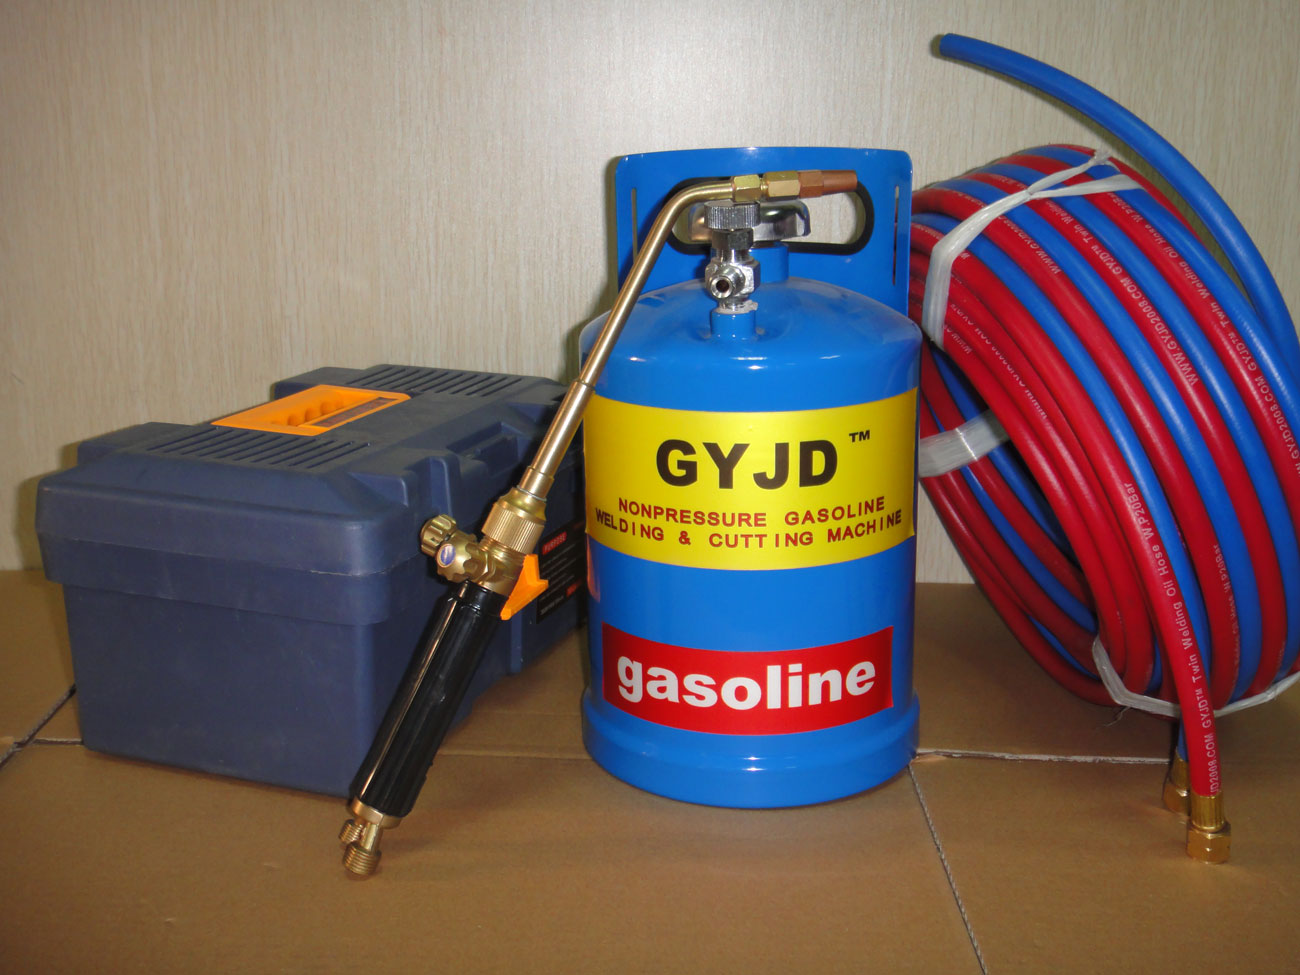 fuel-saving oxy-gasoline welding torch system (equipped with 3L gasoline tank